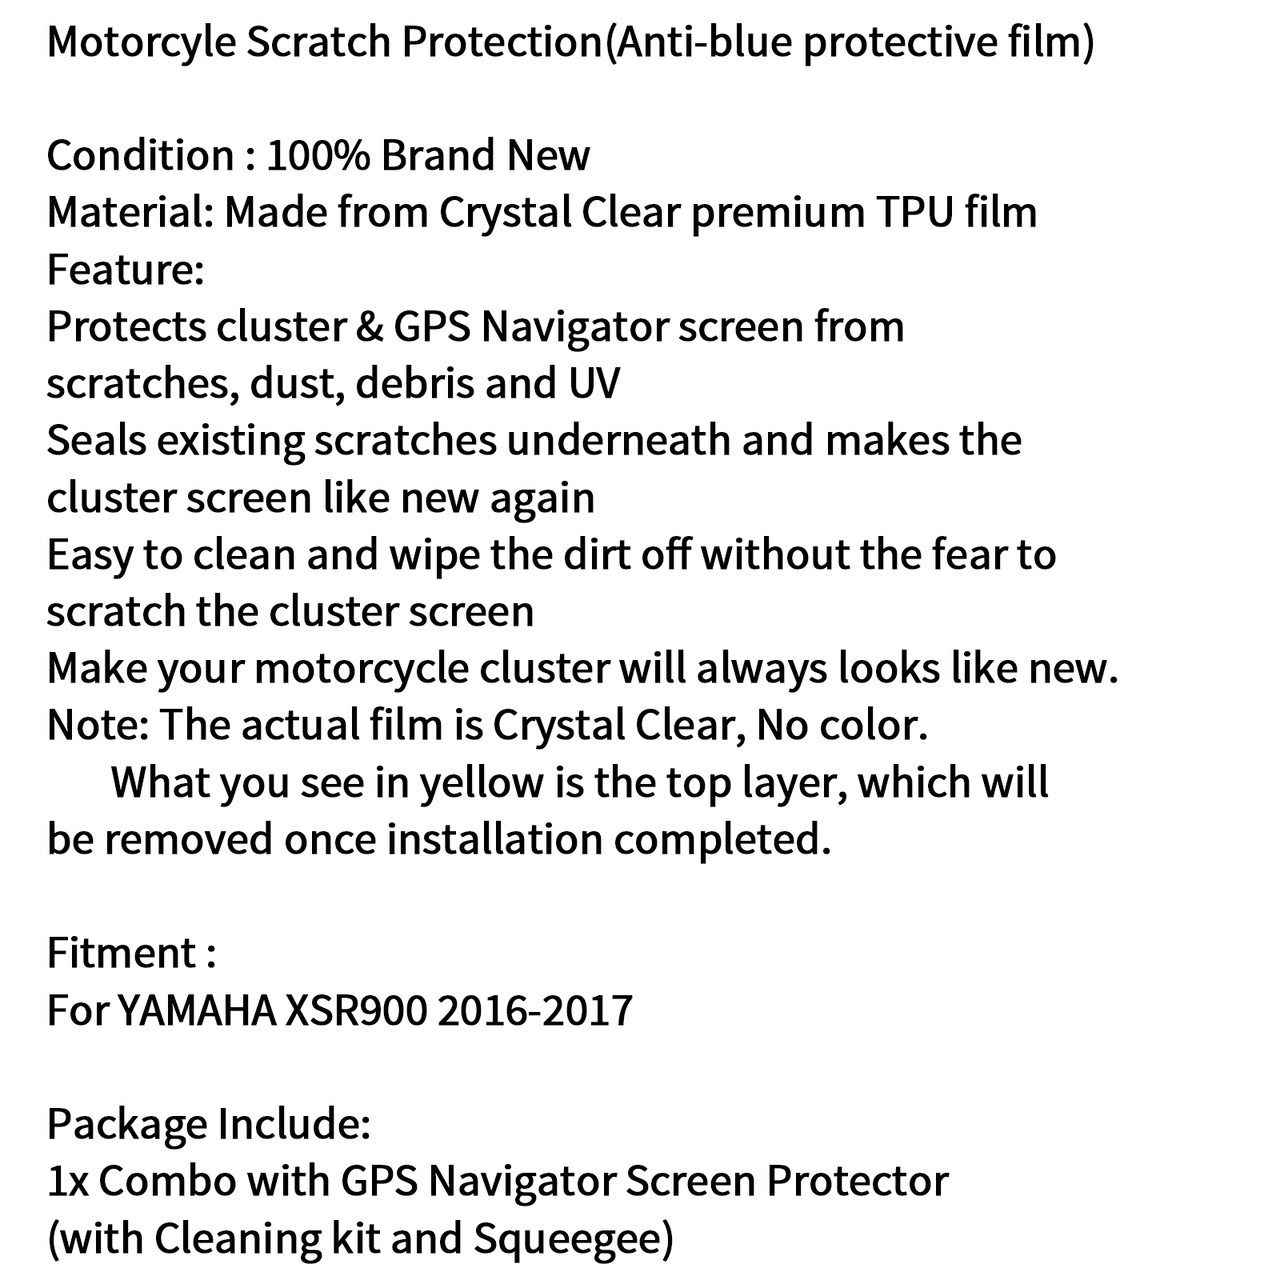 Speedometer Film Screen Protector Anti-Scratch Protection for Yamaha XSR900